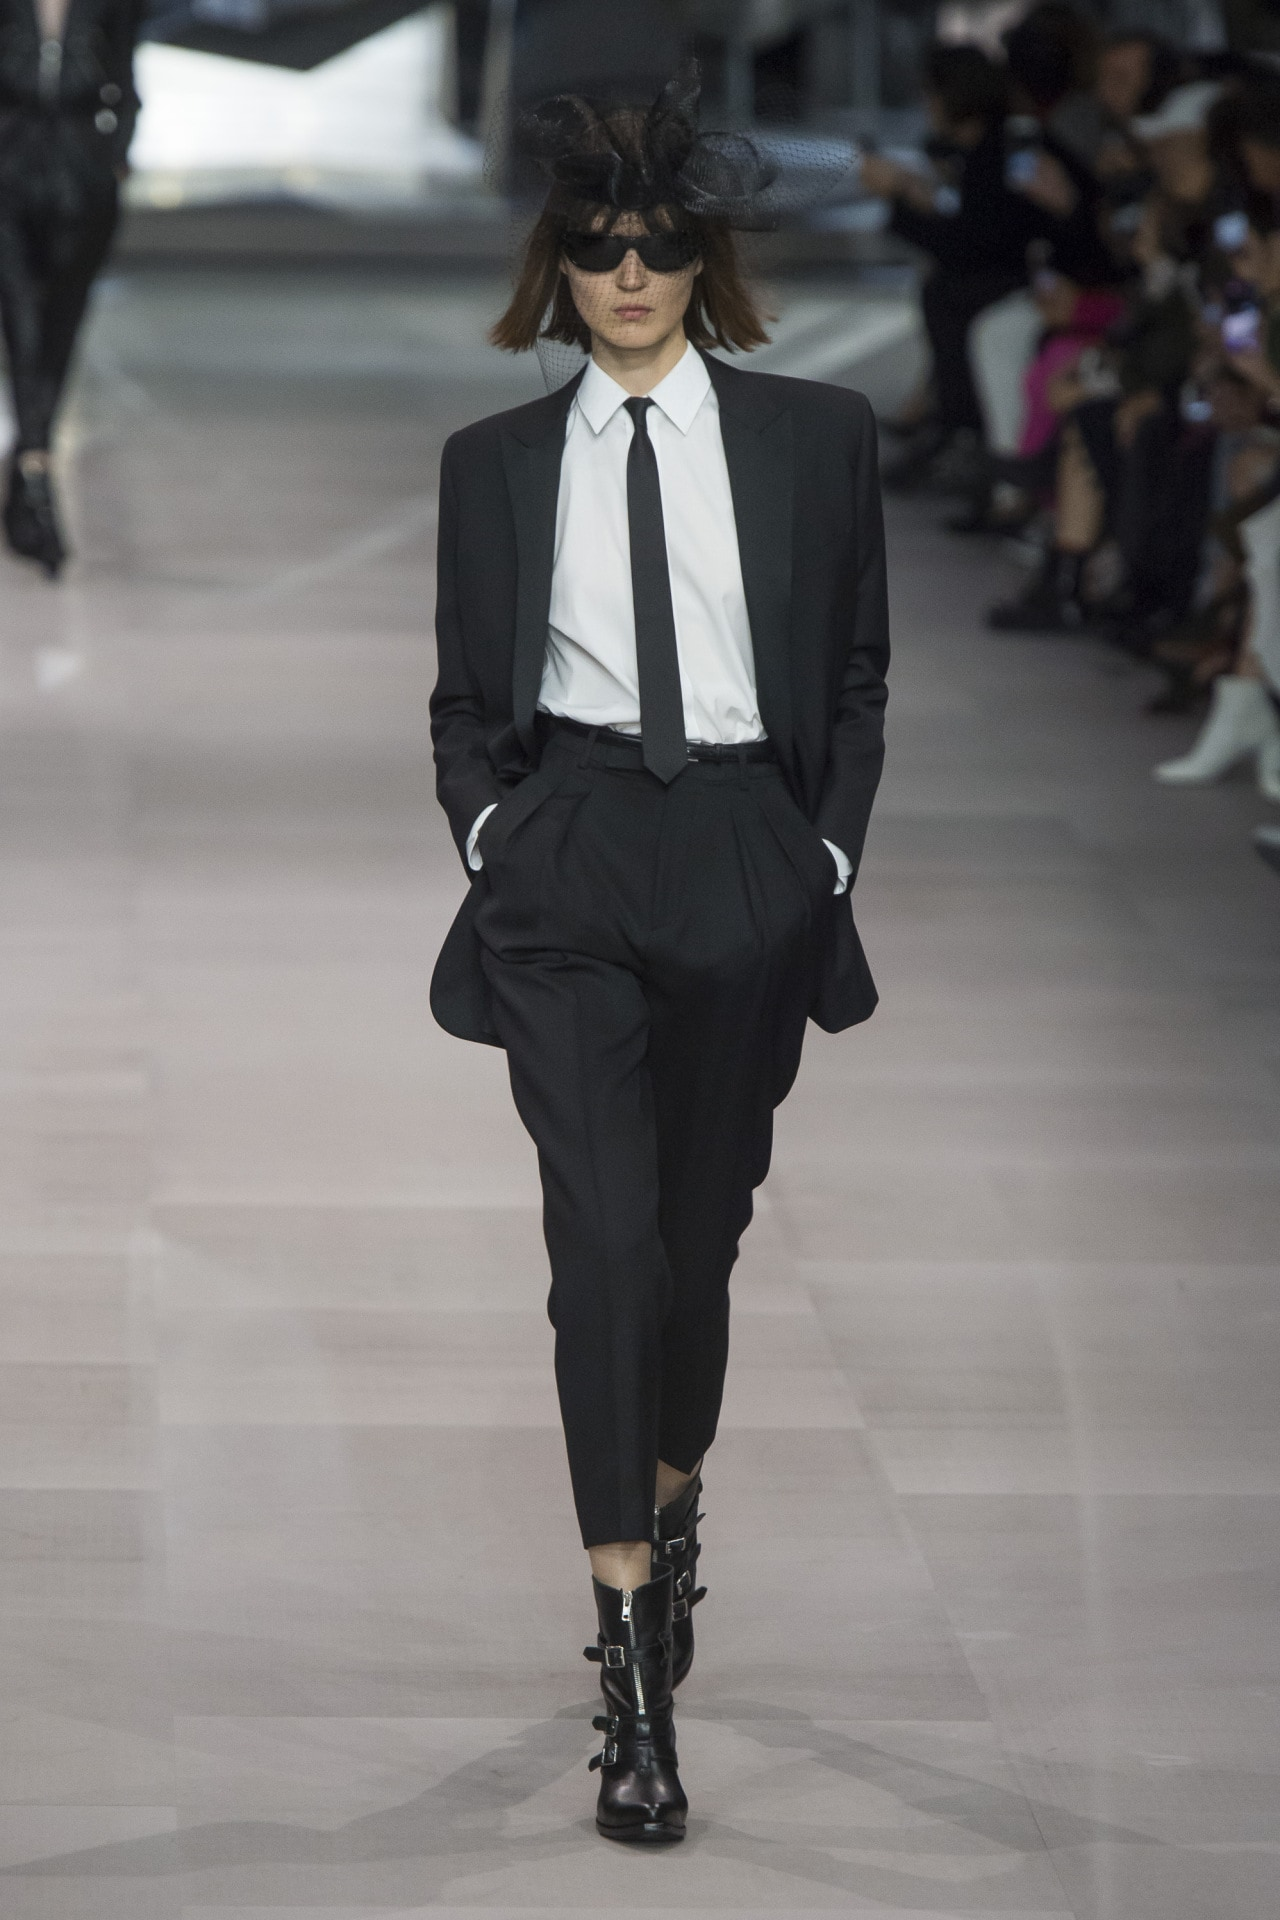 Suit up! Why the time to step into a tailored two piece is upon us